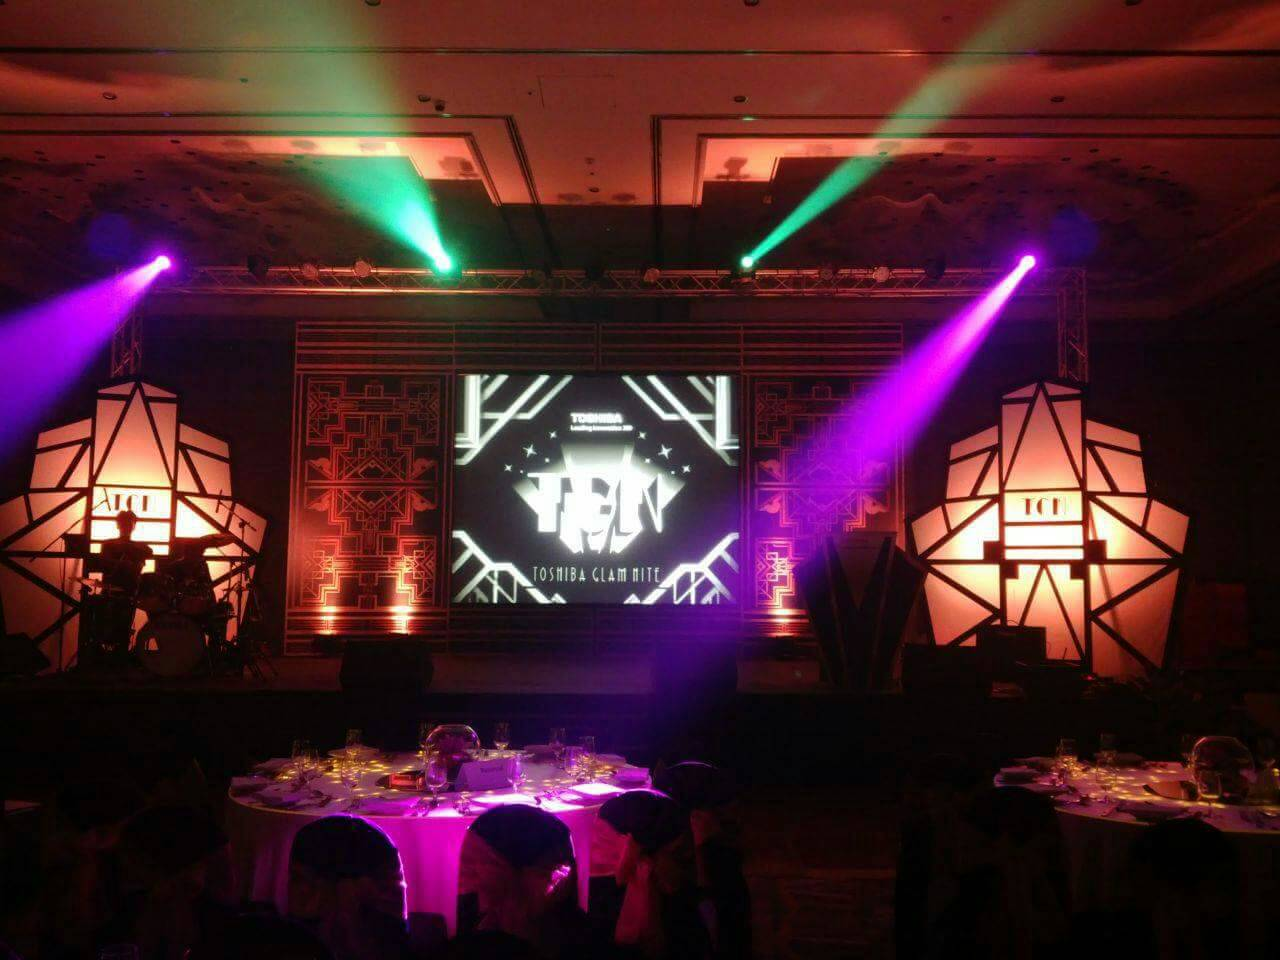 Event Management Company Bangkok